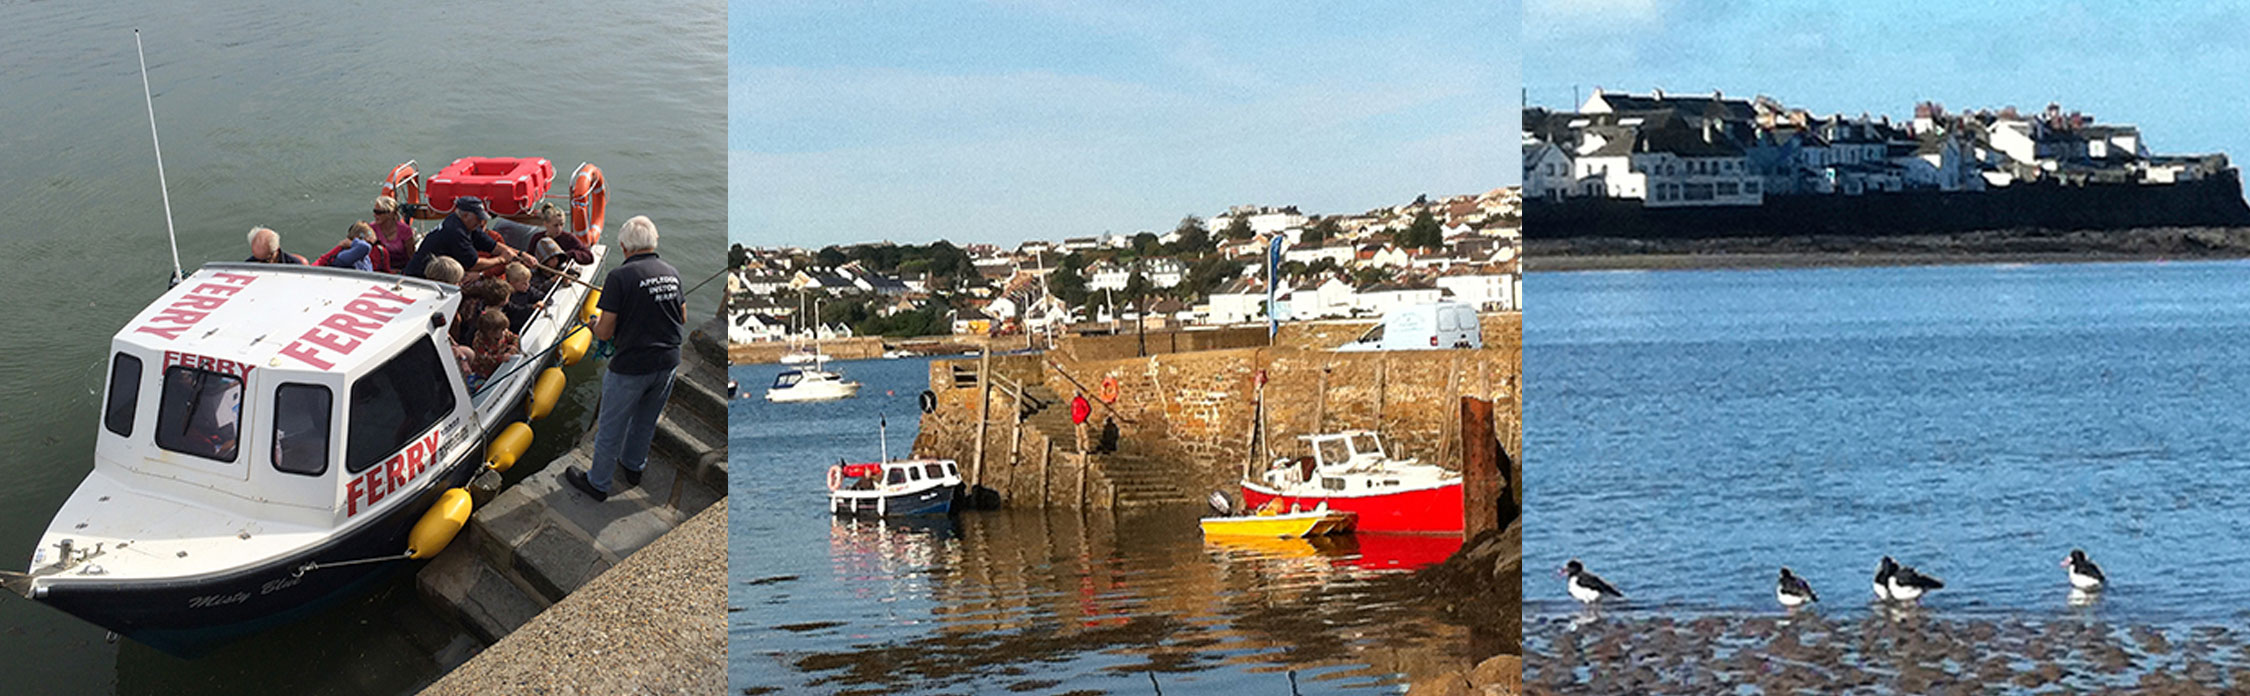 Catch the ferry to Appledore from Instow